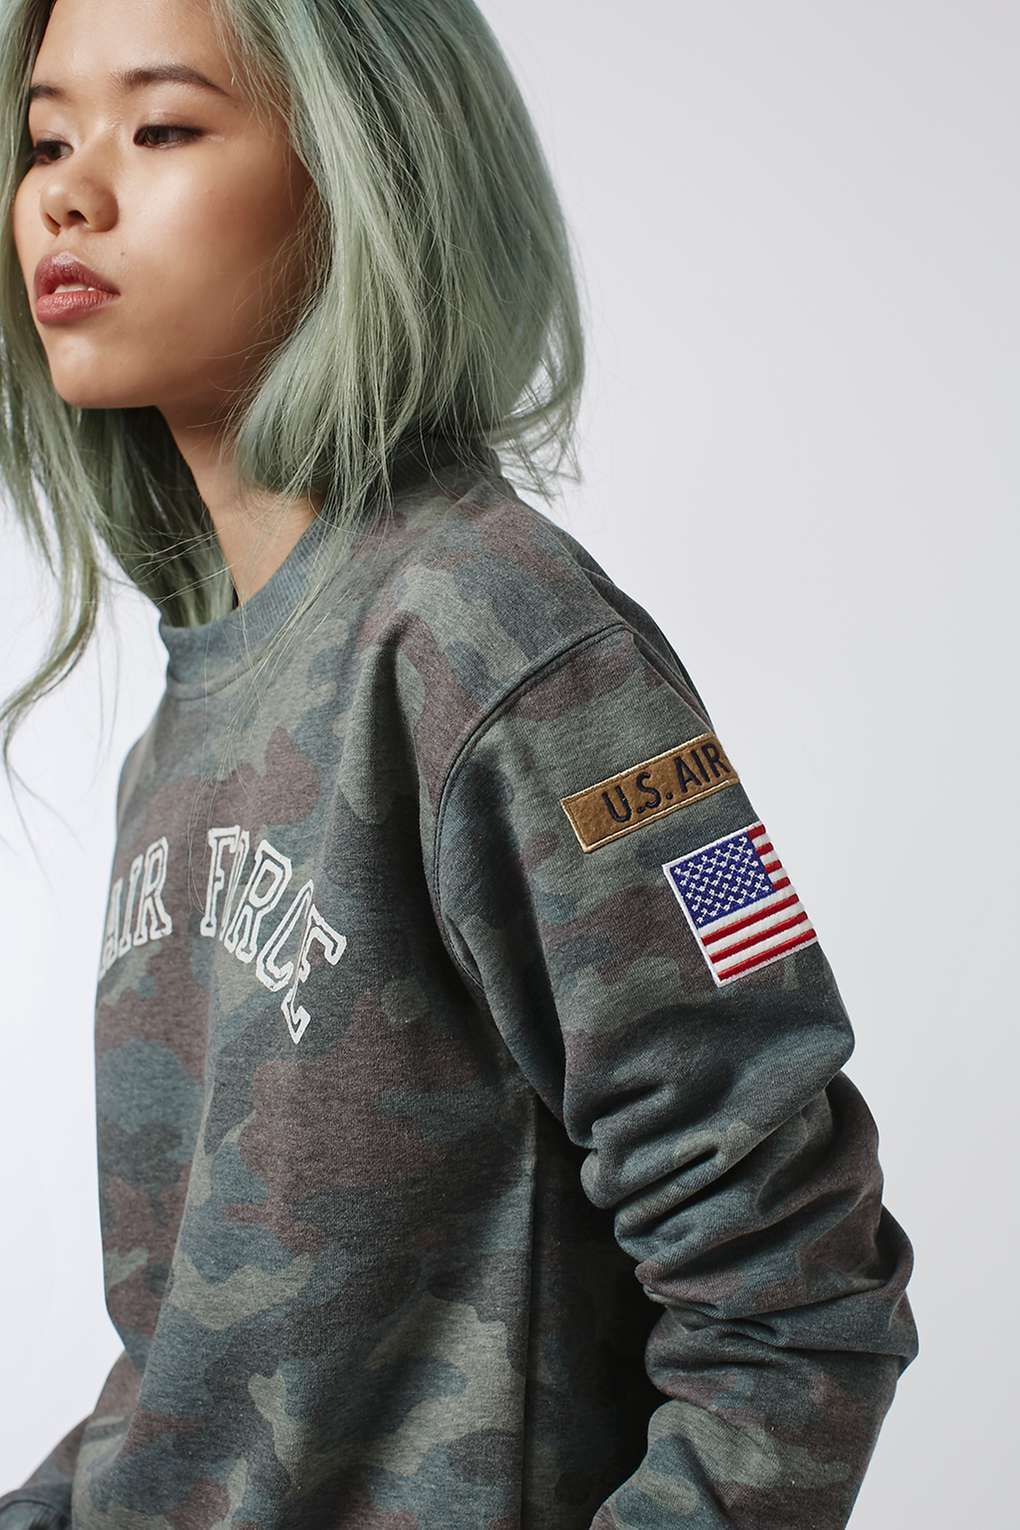 US Army Camo Sweat by Tee & Cake Army clothes, Us army